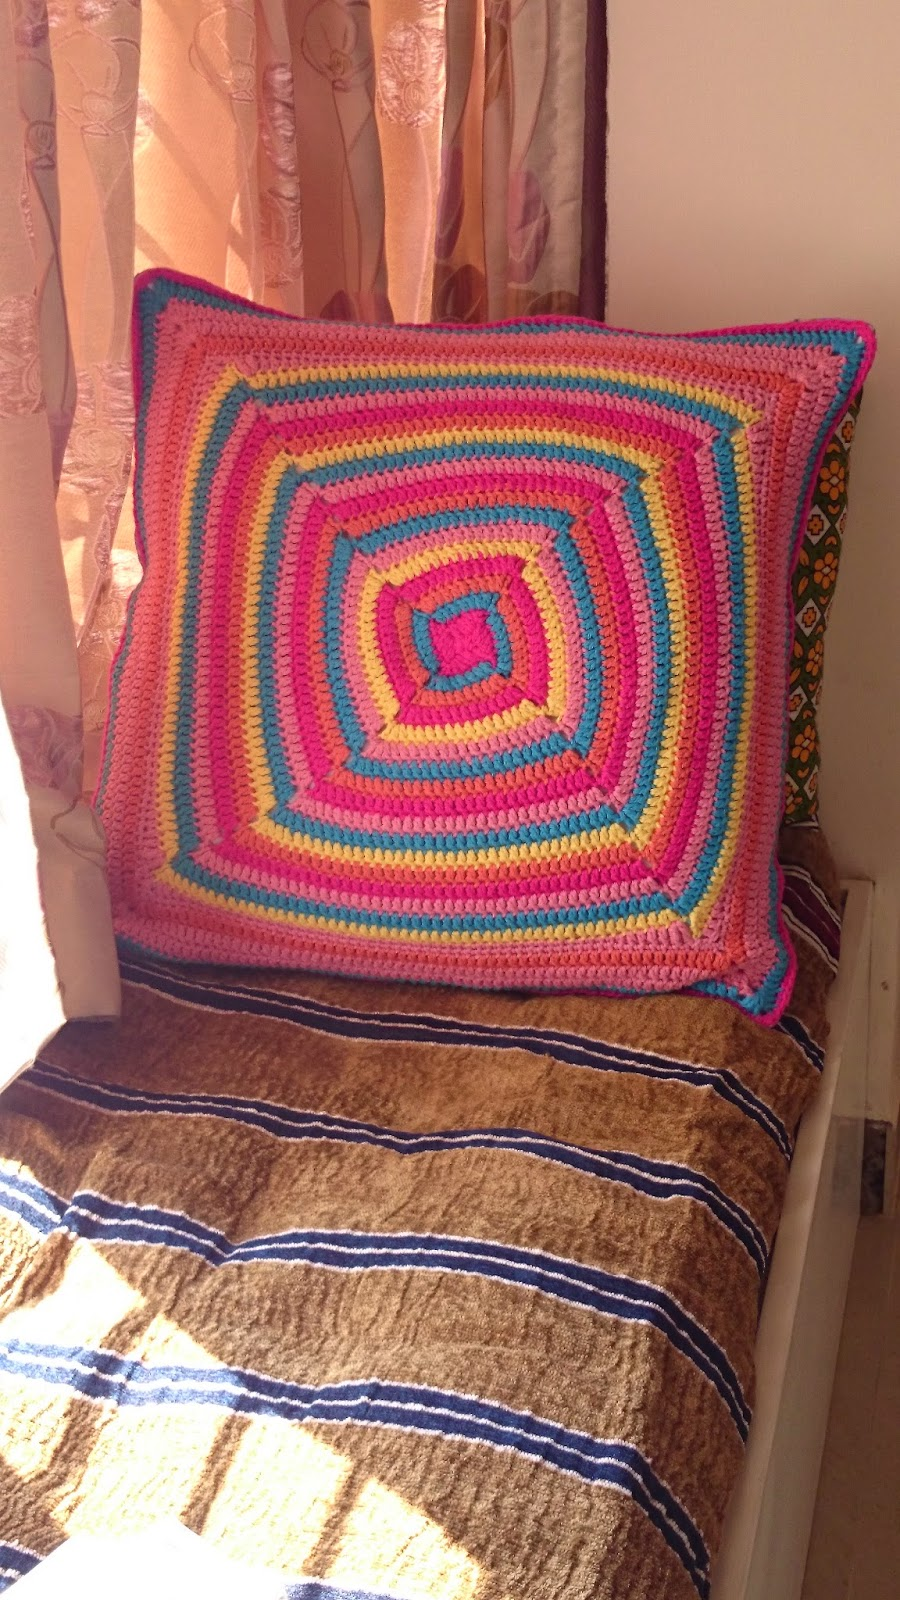 Crochet big cushion cover swirls pattern by Edie Eckman